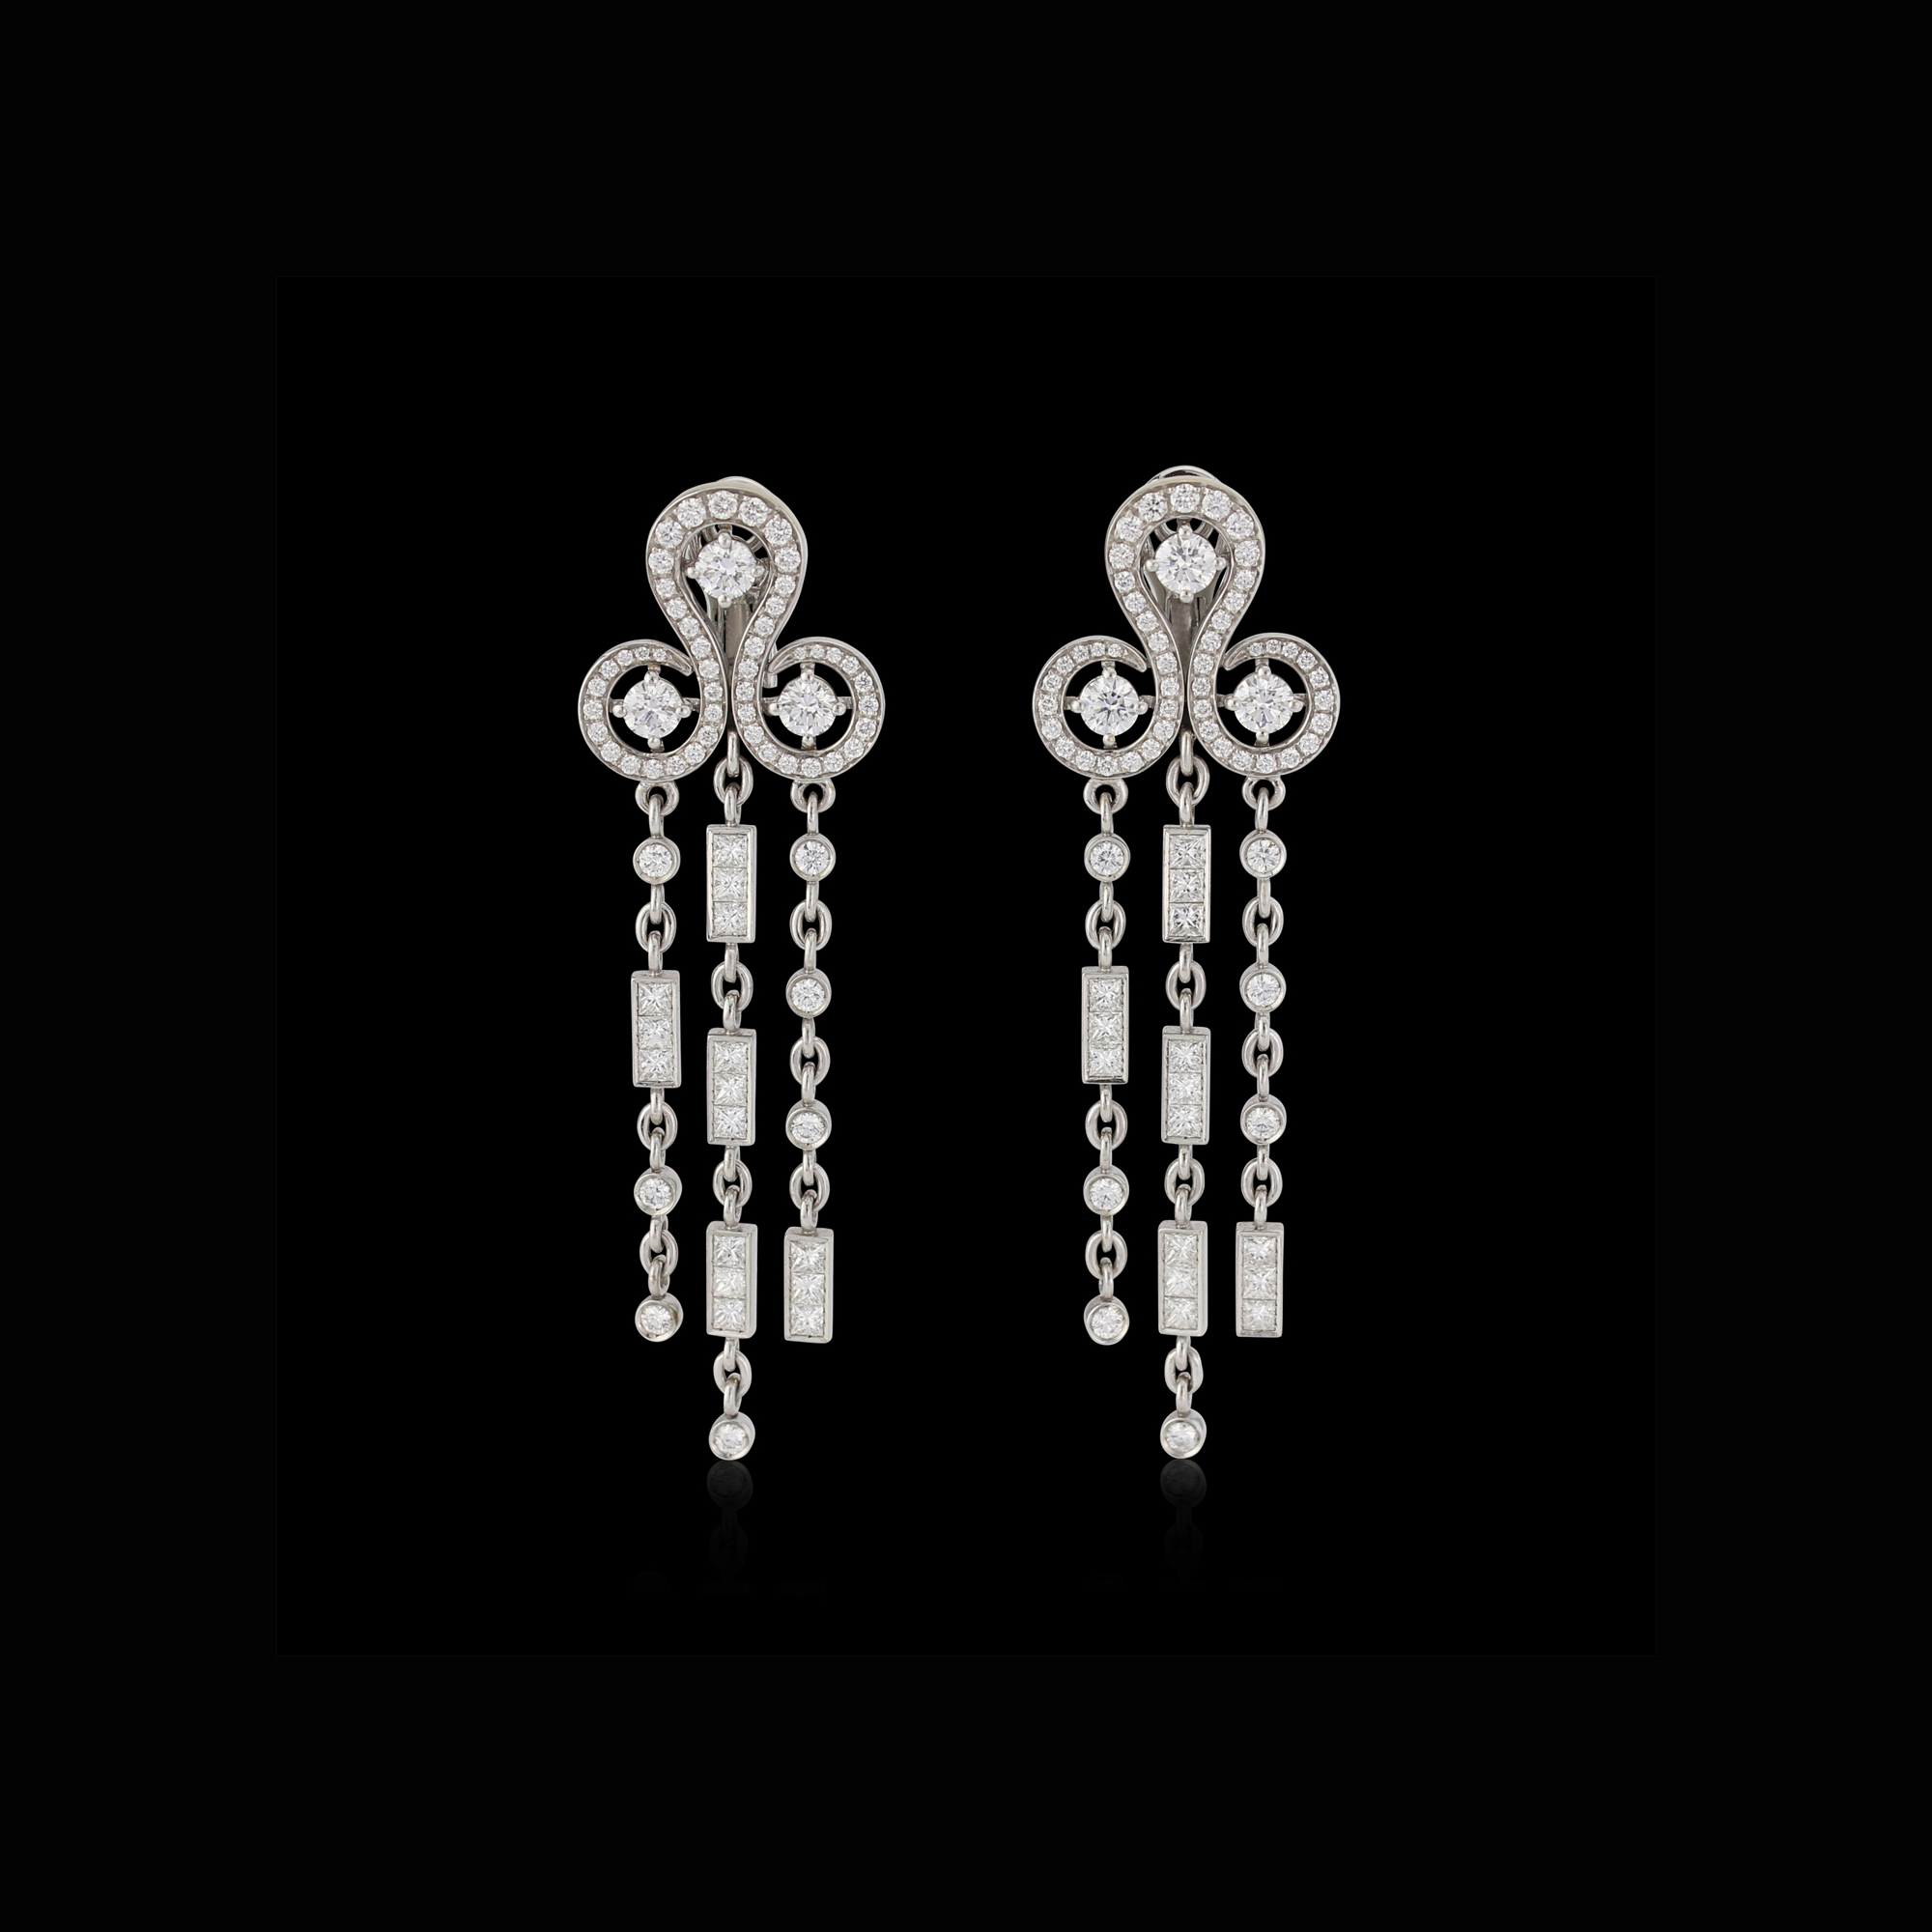 Code by Edge chandelier 'LOVES' earrings